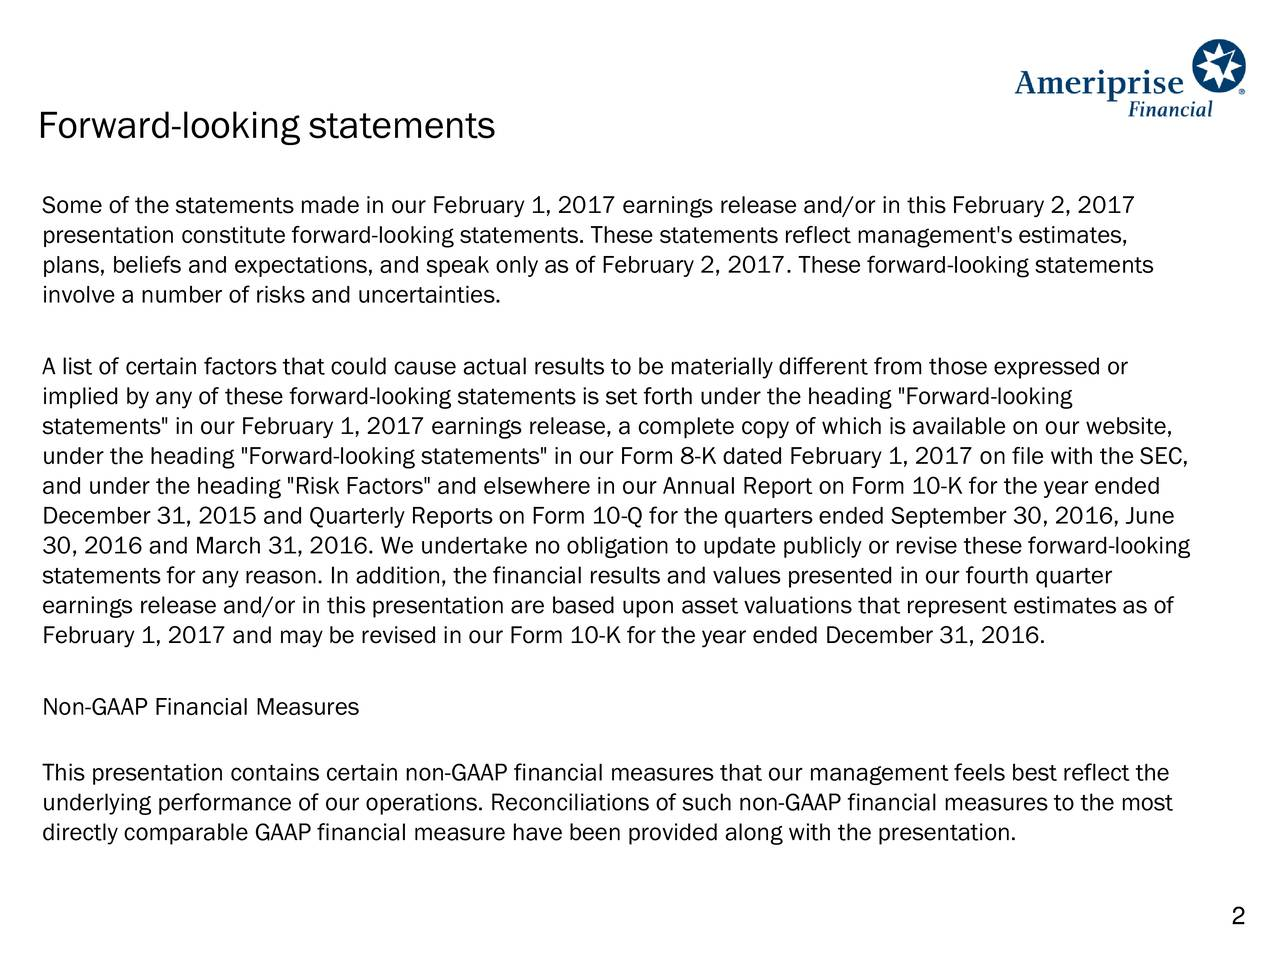 """Some of the statements made in our February 1, 2017 earnings release and/or in this February 2, 2017 presentation constitute forward-looking statements. These statements reflect management's estimates, plans, beliefs and expectations, and speak only as of February 2, 2017. These forward-looking statements involve a number of risks and uncertainties. A list of certain factors that could cause actual results to be materially different from those expressed or implied by any of these forward-looking statements is set forth under the heading """"Forward-looking statements"""" in our February 1, 2017 earnings release, a complete copy of which is available on our website, under the heading """"Forward-looking statements"""" in our Form 8-K dated February 1, 2017 on file with the SEC, and under the heading """"Risk Factors"""" and elsewhere in our Annual Report on Form 10-K for the year ended December 31, 2015 and Quarterly Reports on Form 10-Q for the quarters ended September 30, 2016, June 30, 2016 and March 31, 2016. We undertake no obligation to update publicly or revise these forward-looking statements for any reason. In addition, the financial results and values presented in our fourth quarter earnings release and/or in this presentation are based upon asset valuations that represent estimates as of February 1, 2017 and may be revised in our Form 10-K for the year ended December 31, 2016. Non-GAAP Financial Measures This presentation contains certain non-GAAP financial measures that our management feels best reflect the underlying performance of our operations. Reconciliations of such non-GAAP financial measures to the most directly comparable GAAP financial measure have been provided along with the presentation. 2"""